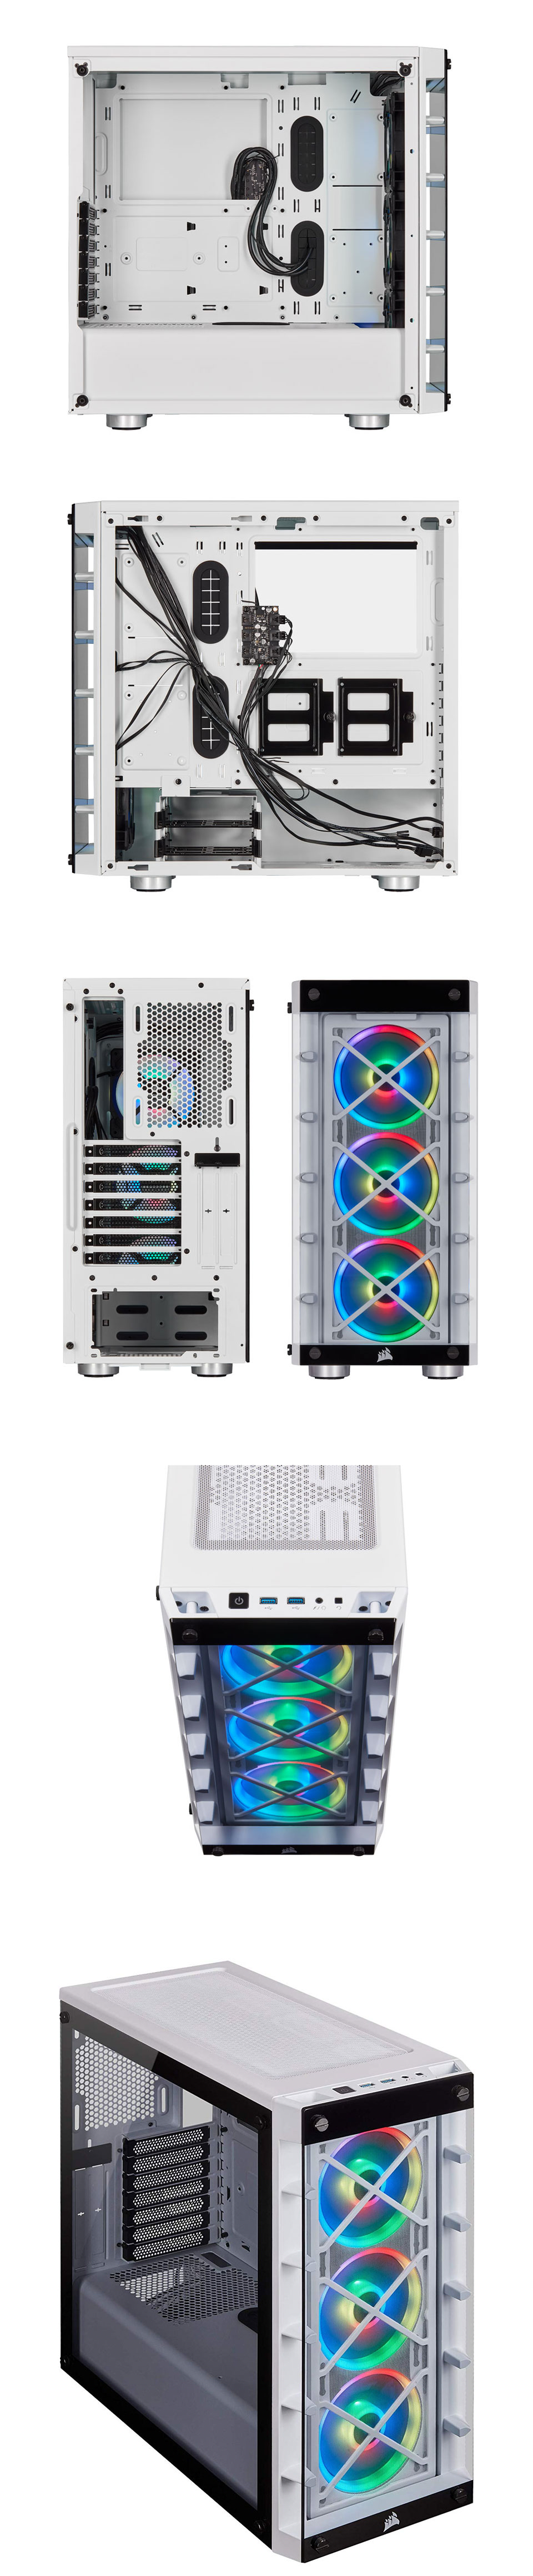 Corsair iCUE 465X RGB Tempered Glass Case White product